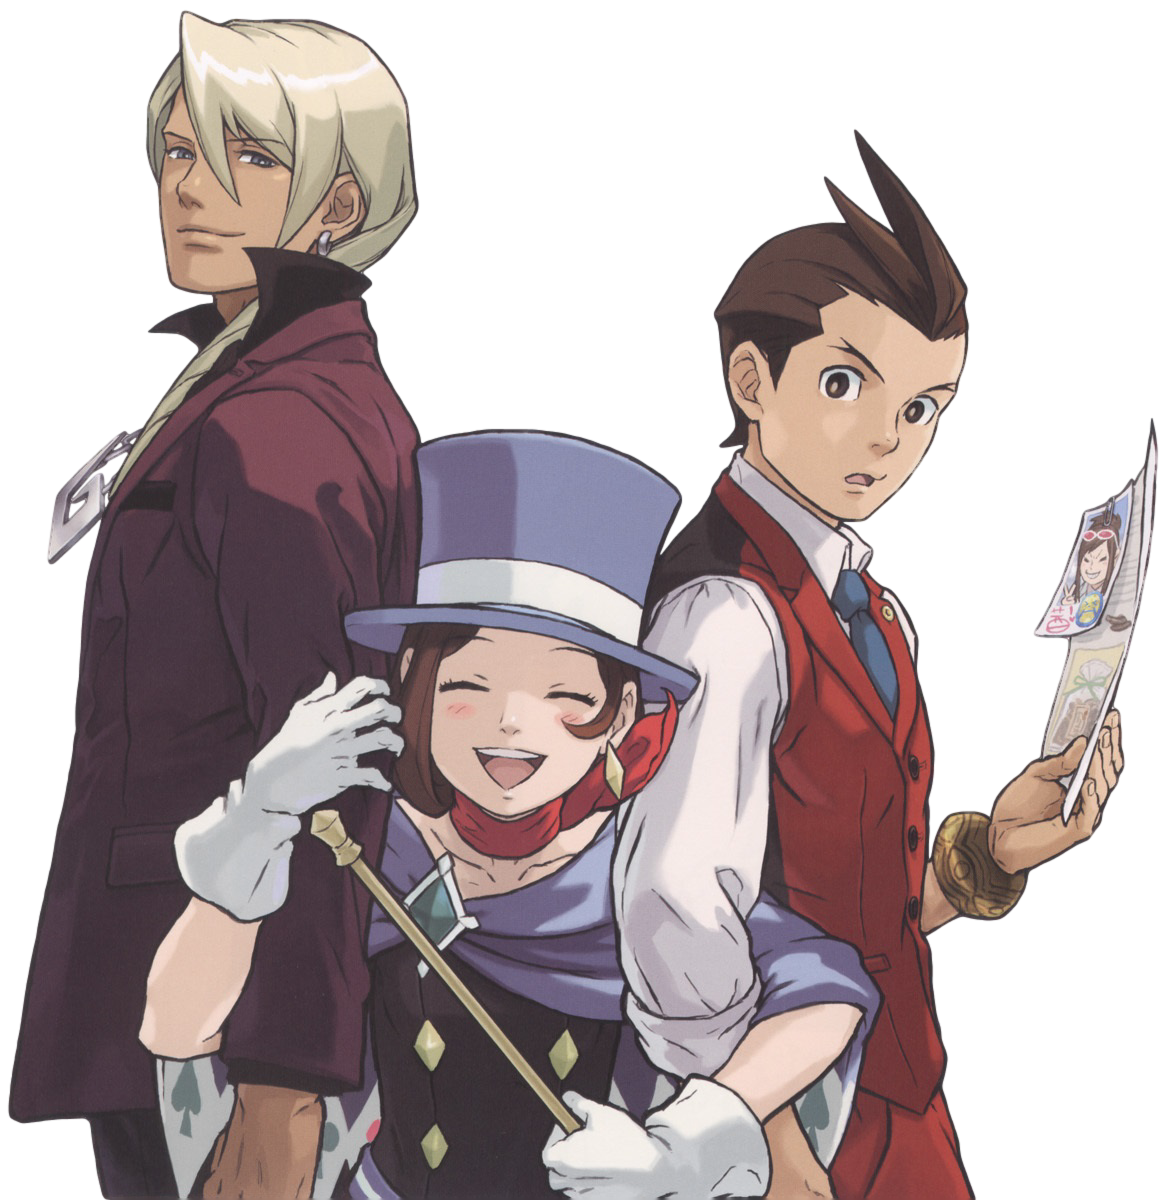 The Transparent Turnabout Ace, Zelda characters